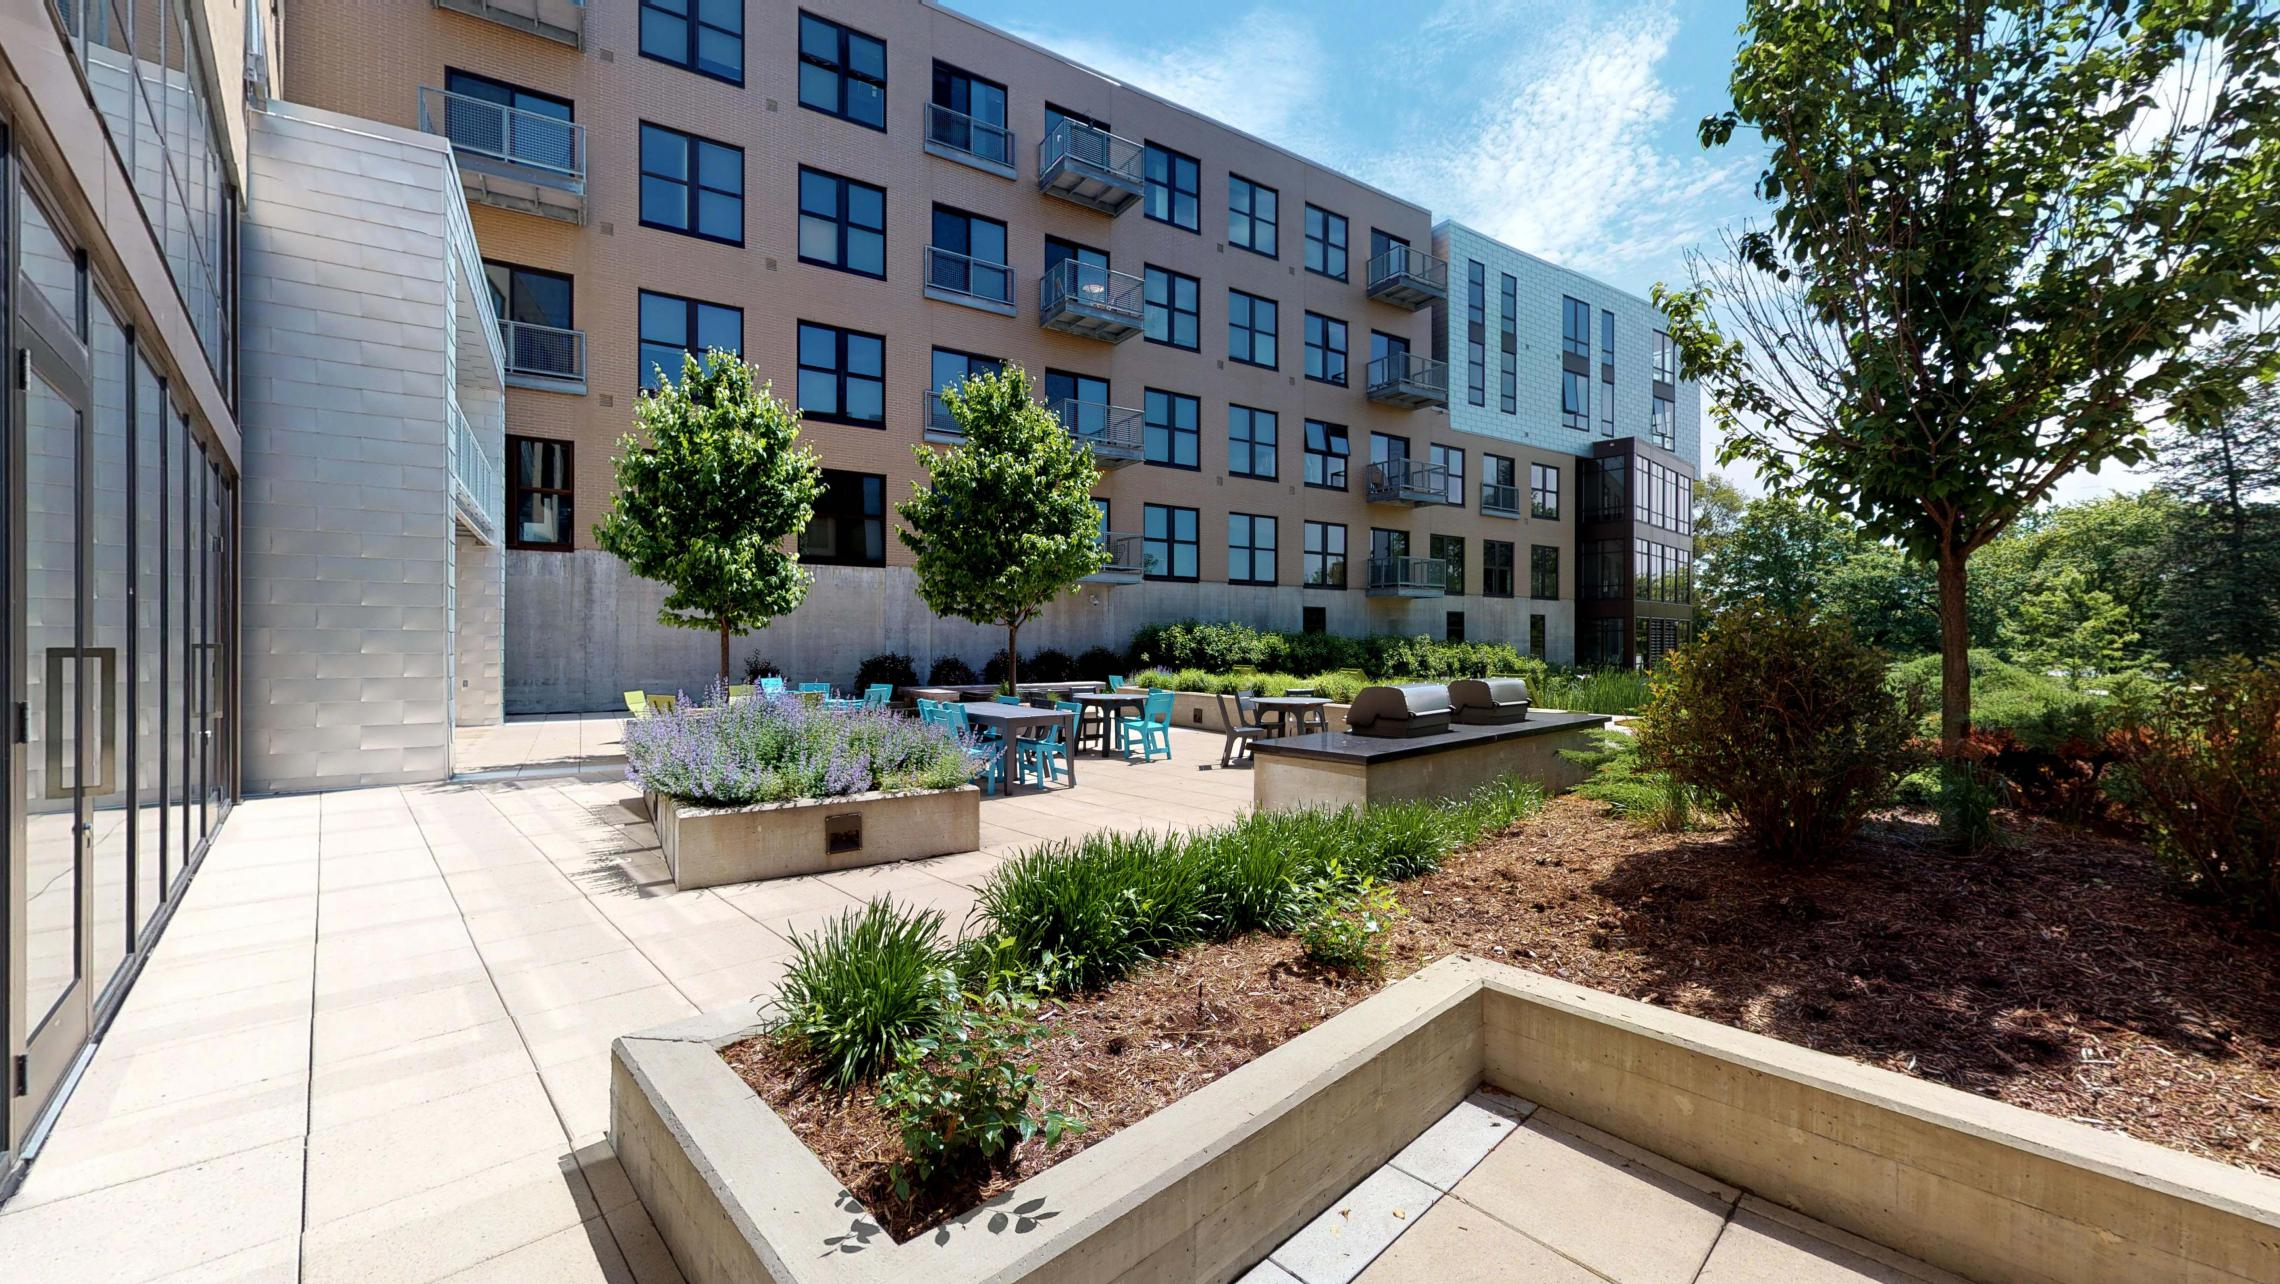 SEVEN27-115-Apartment-Patio-Courtyard_modern-upscale-downtown-lakeview-madison-city.jpg